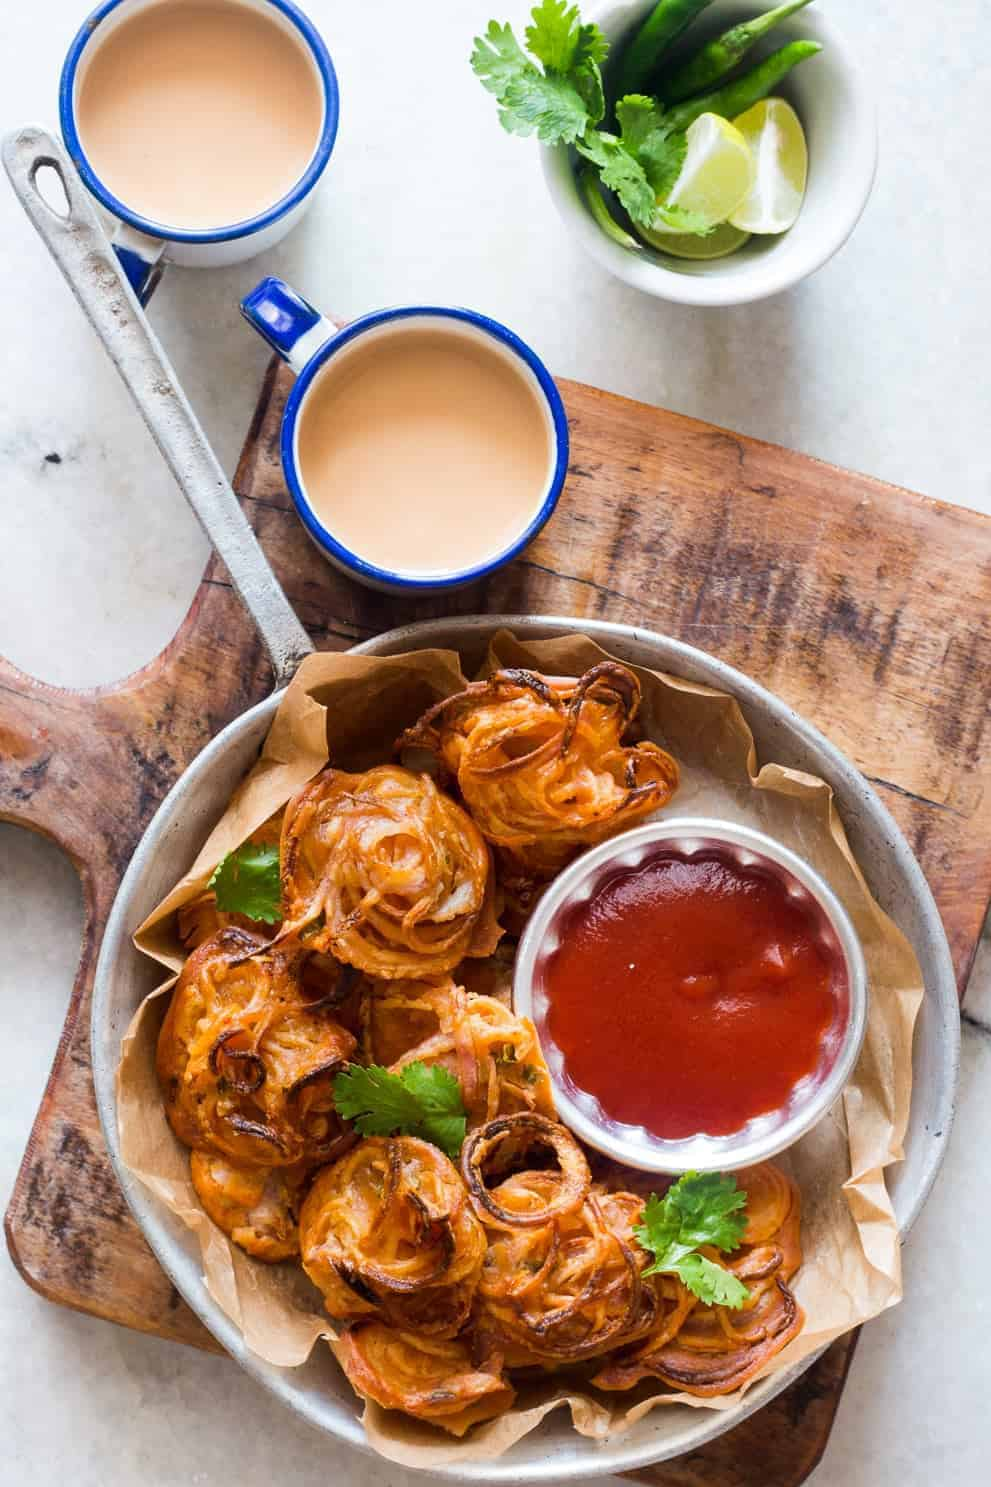 CRISPY BAKED ONIONS FRITTERS (PAKODAS) by My Food Story: These delicious and easy veganappetizers are what you'll need for your Christmas feast. The most incredible, healthy and inexpensive party food perfect to please a crowd!